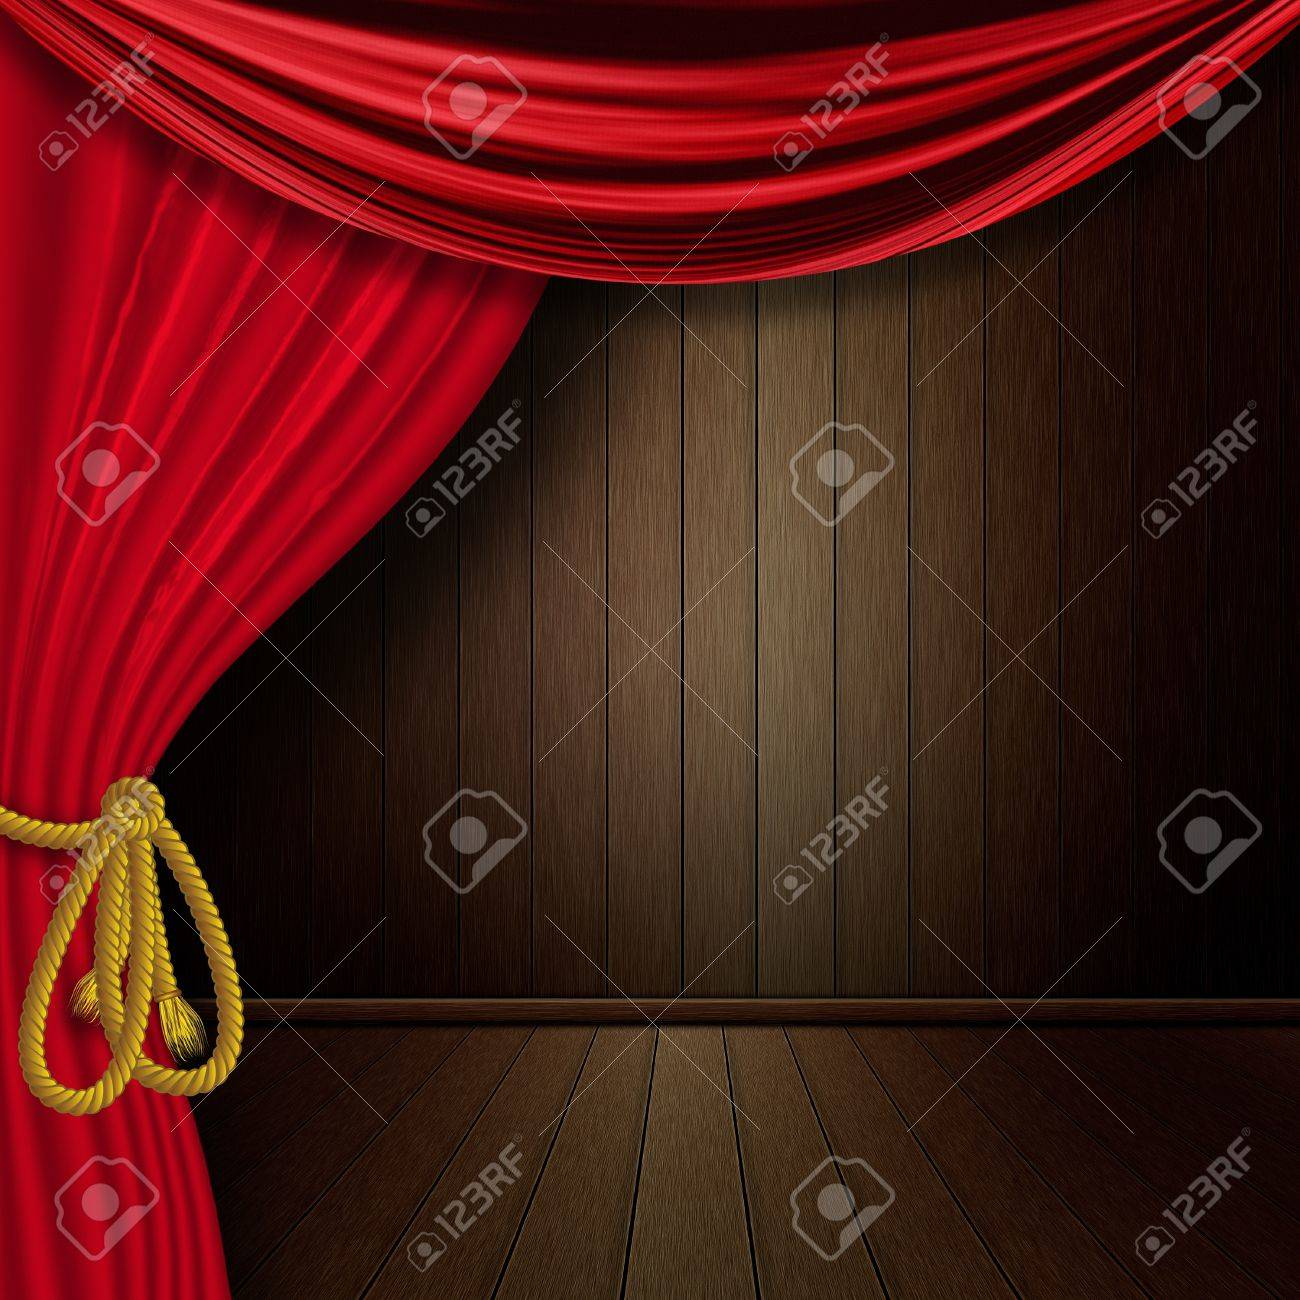 Old Dark Wood Interior With Red Curtain Background. Stock Photo   18352699